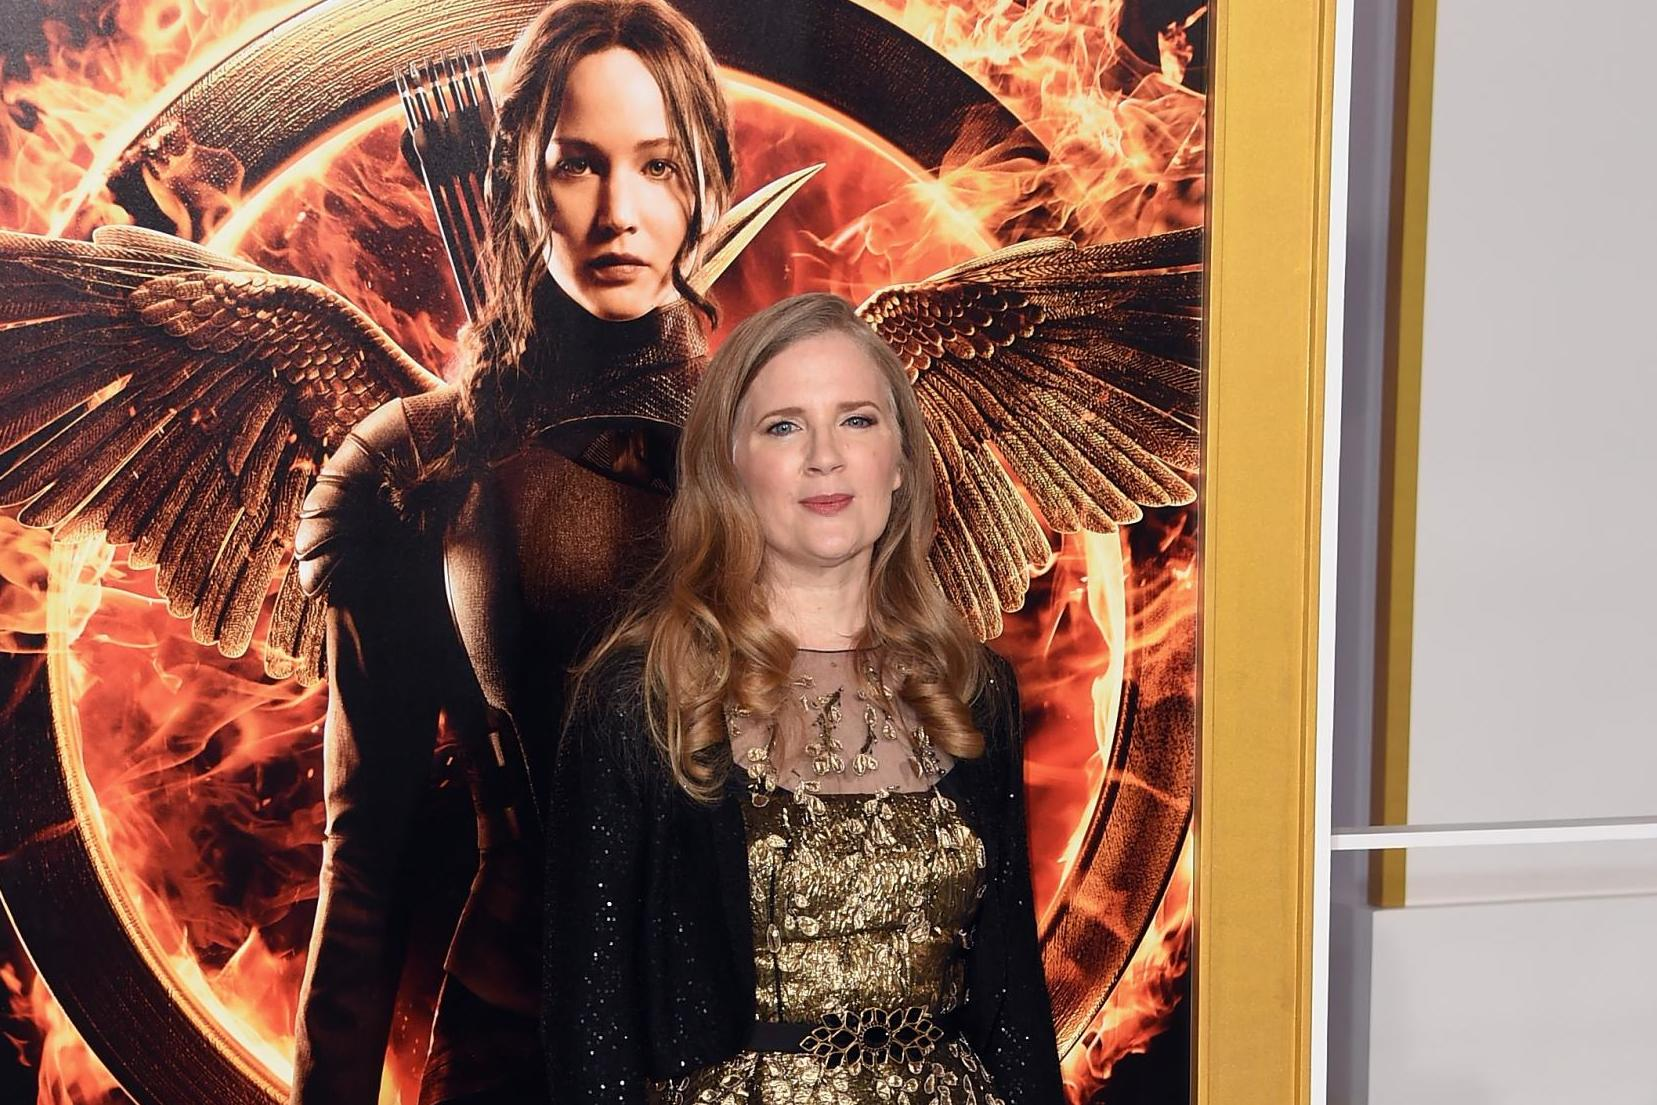 Hunger Games author Suzanne Collins to release prequel set 64 years before trilogy